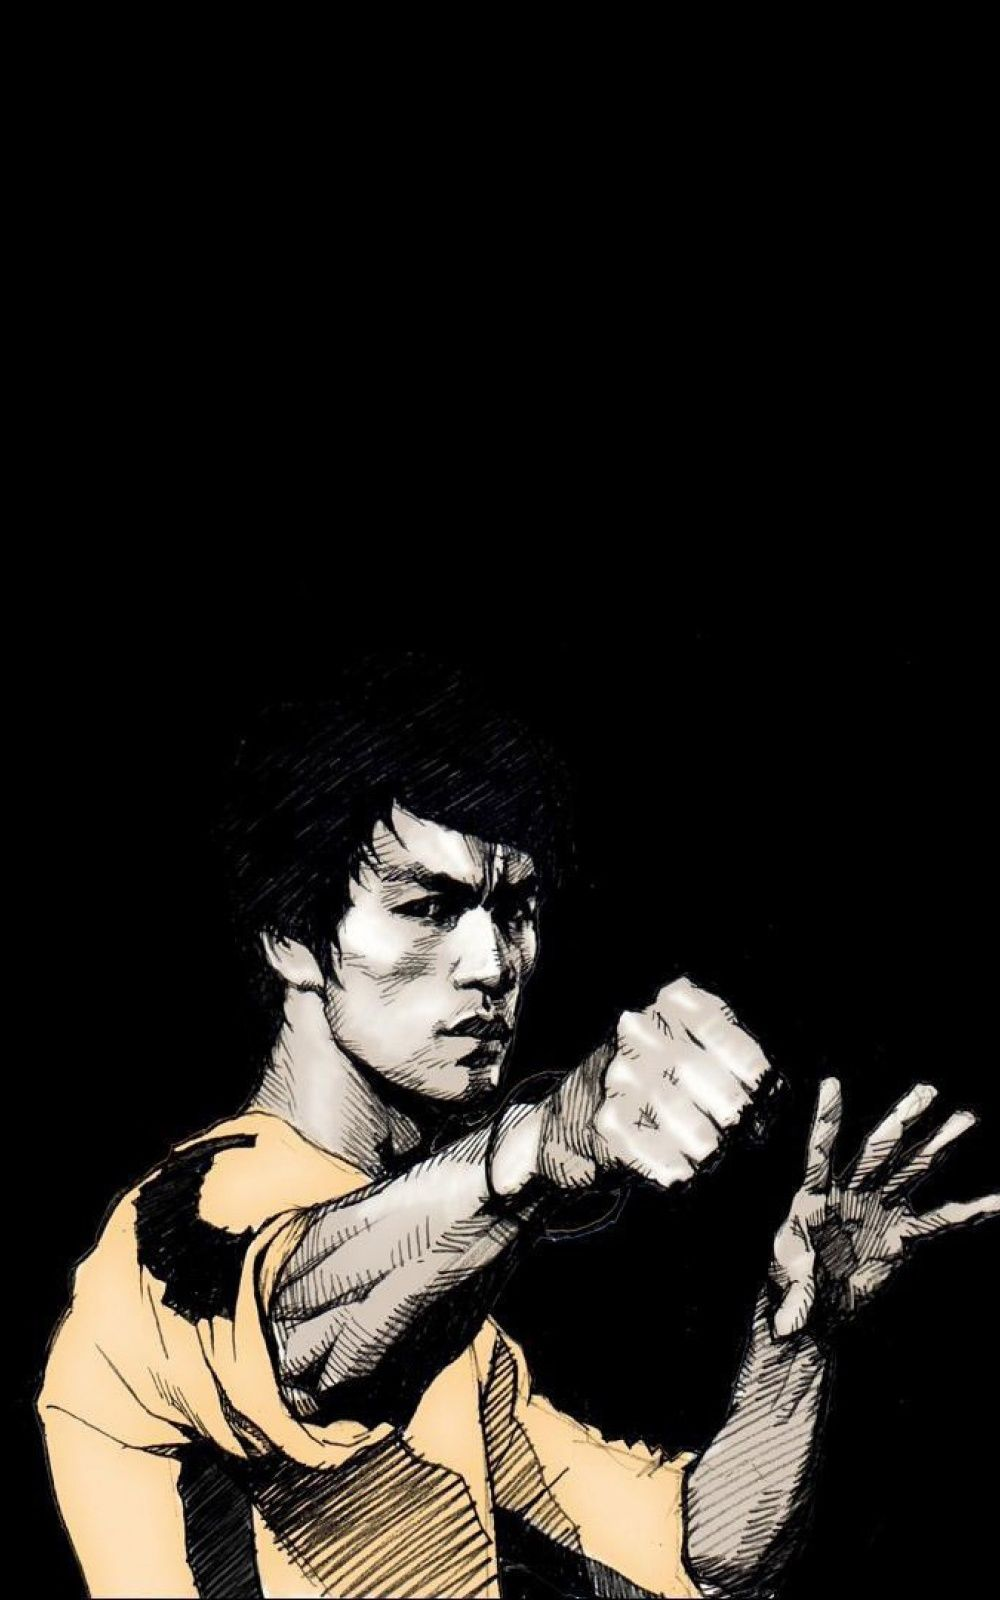 1000x1600 - Bruce Lee Wallpapers 5